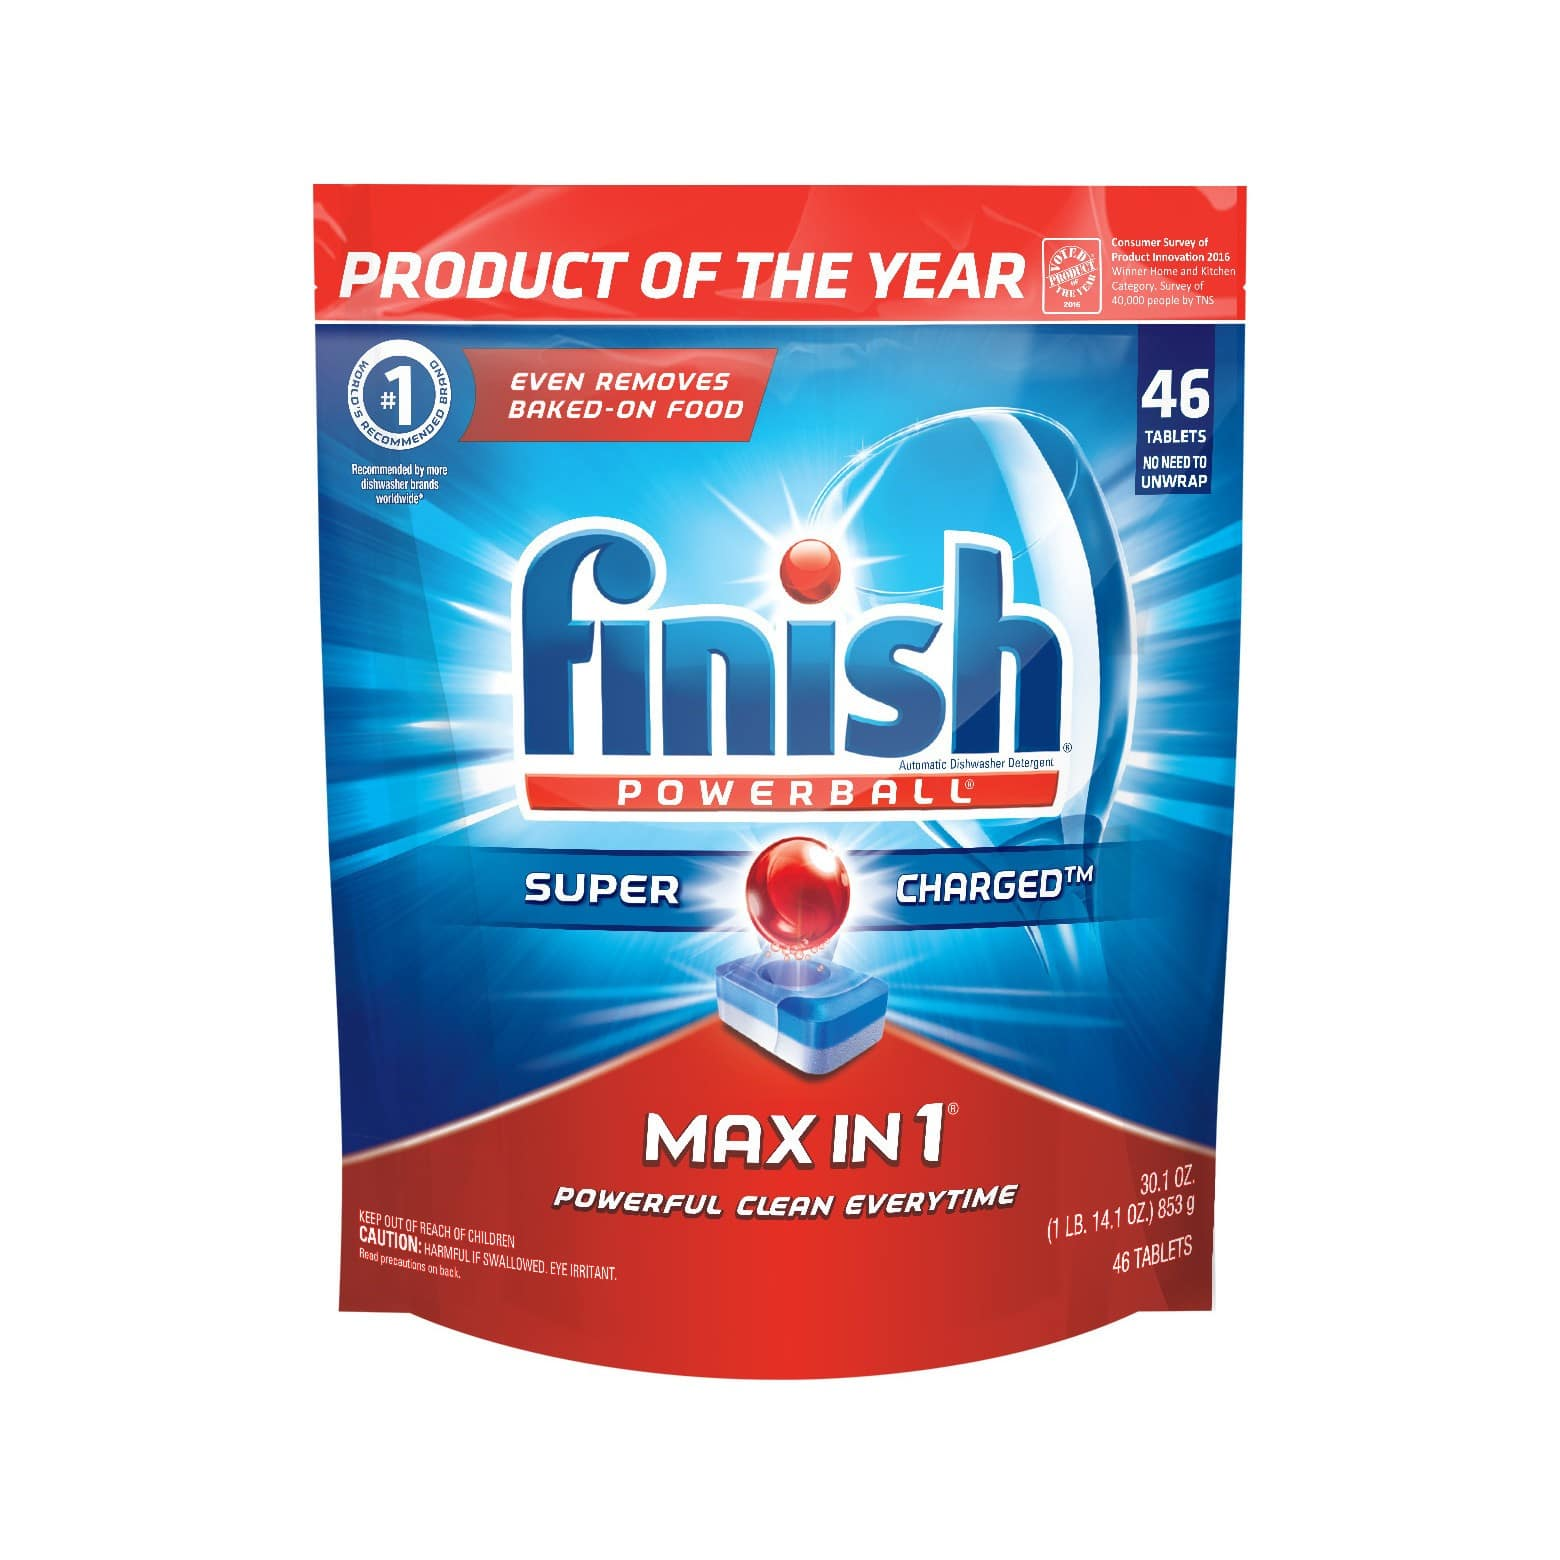 Finish Max in 1 Powerball Dishwasher Tablets, 46x2 = 92 count @ $15.18 FS w/ subscription + $5 GC = $10.18